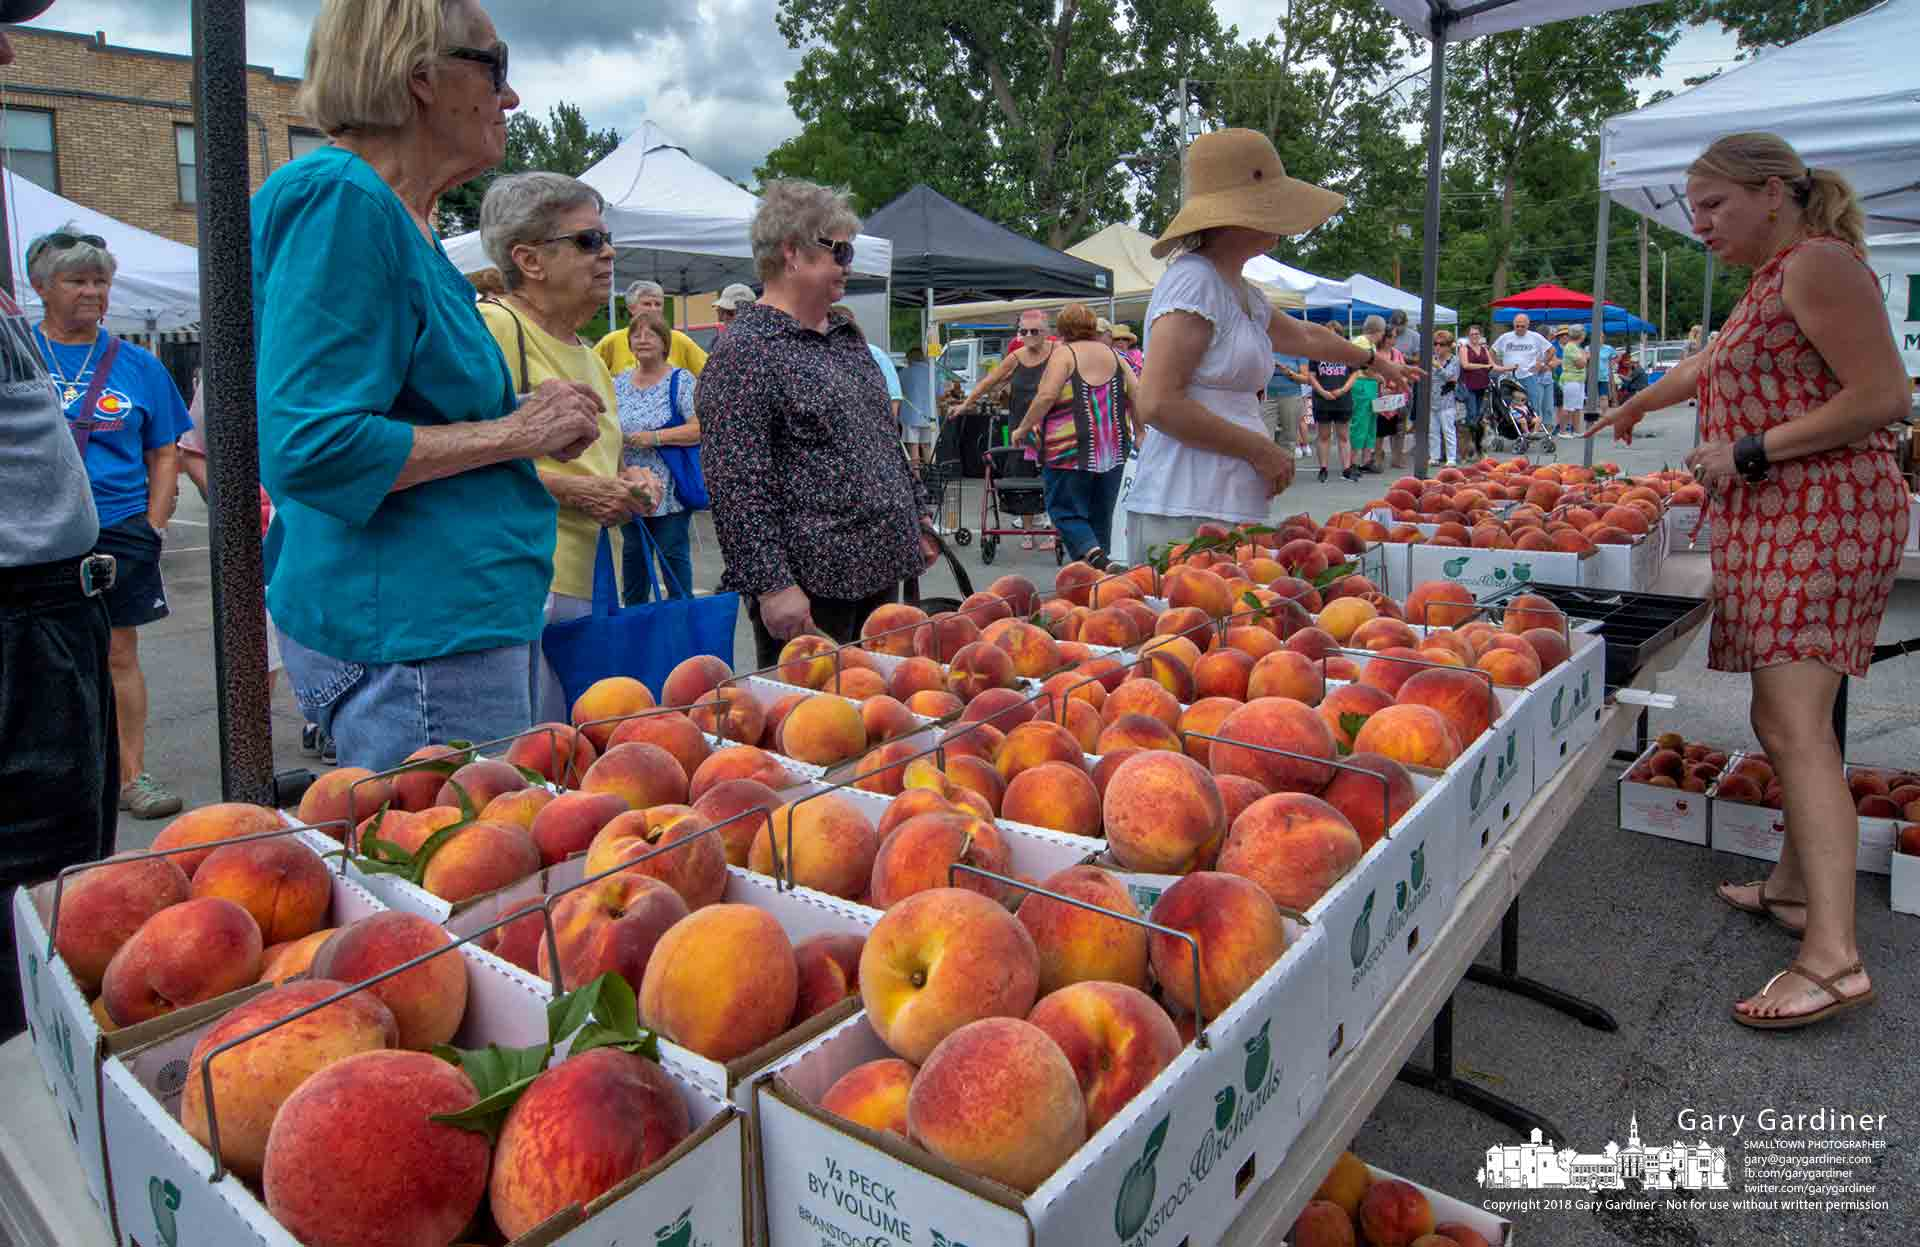 Shoppers line up at the Branstool Orchards table on the first day the farm brought peaches to the Uptown Westerville Farmers Market. My Final Photo for Aug. 8, 2018.